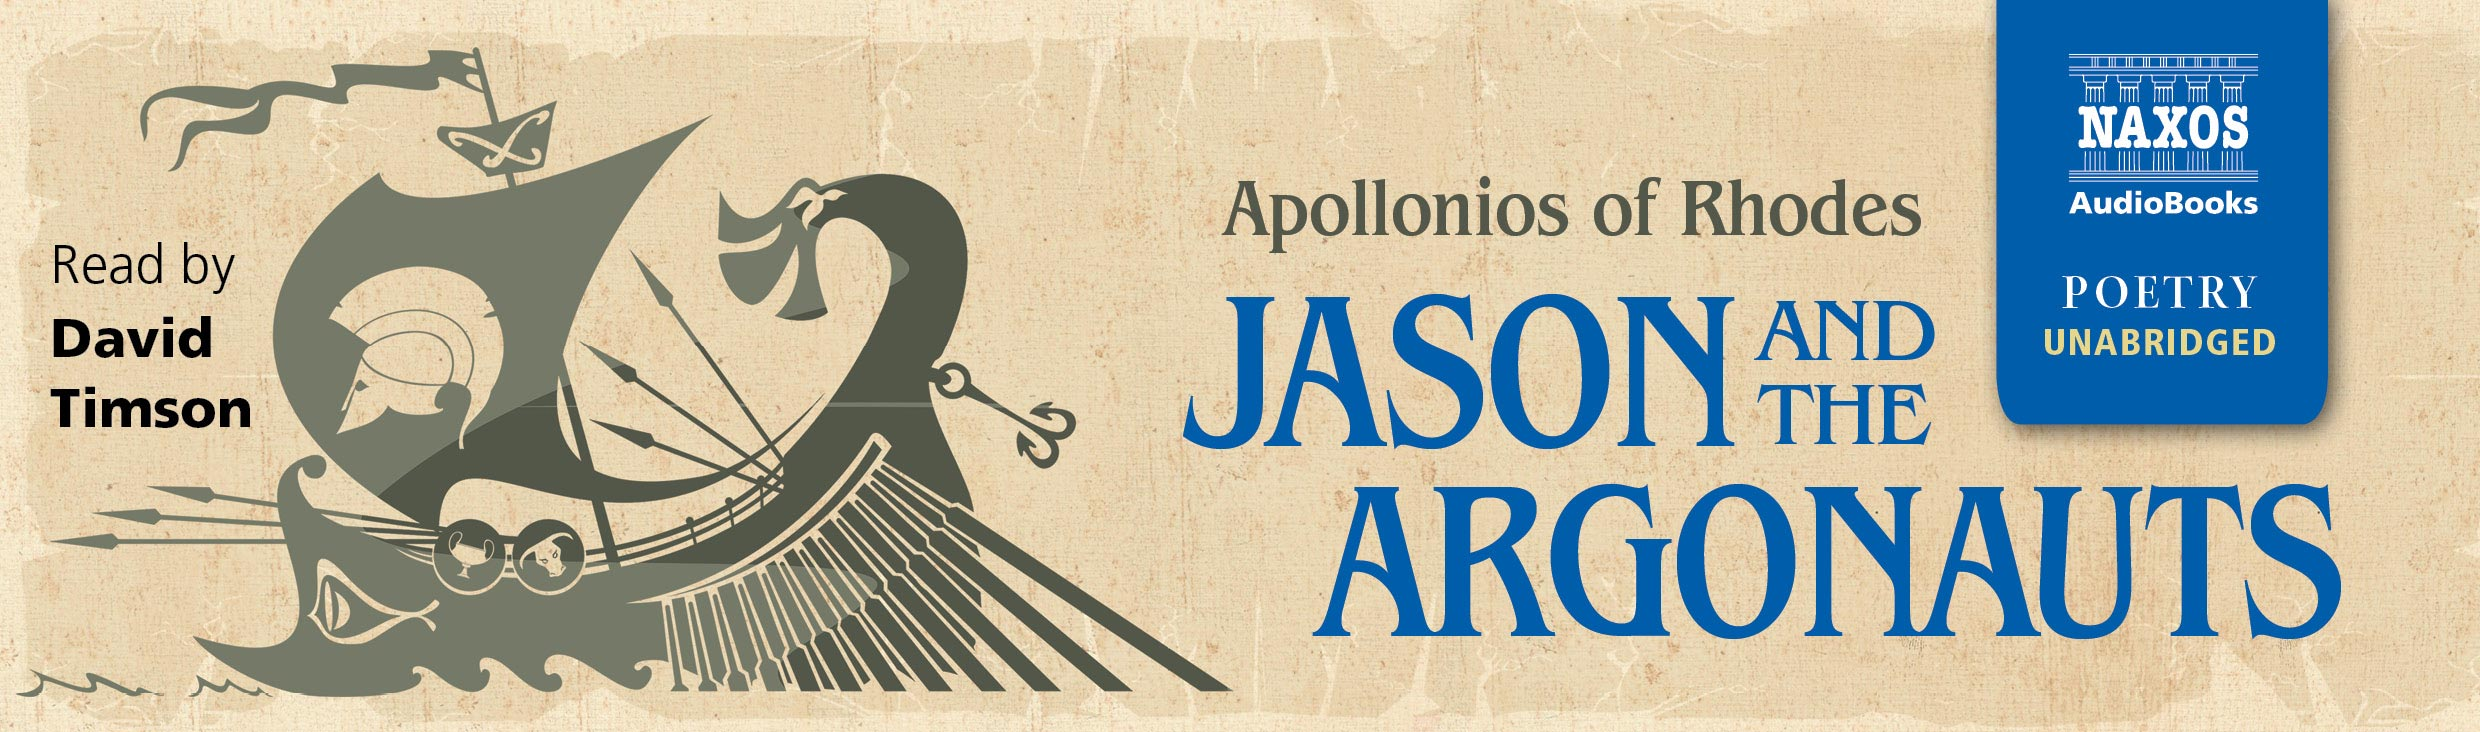 Jason and the Argonauts (unabridged)